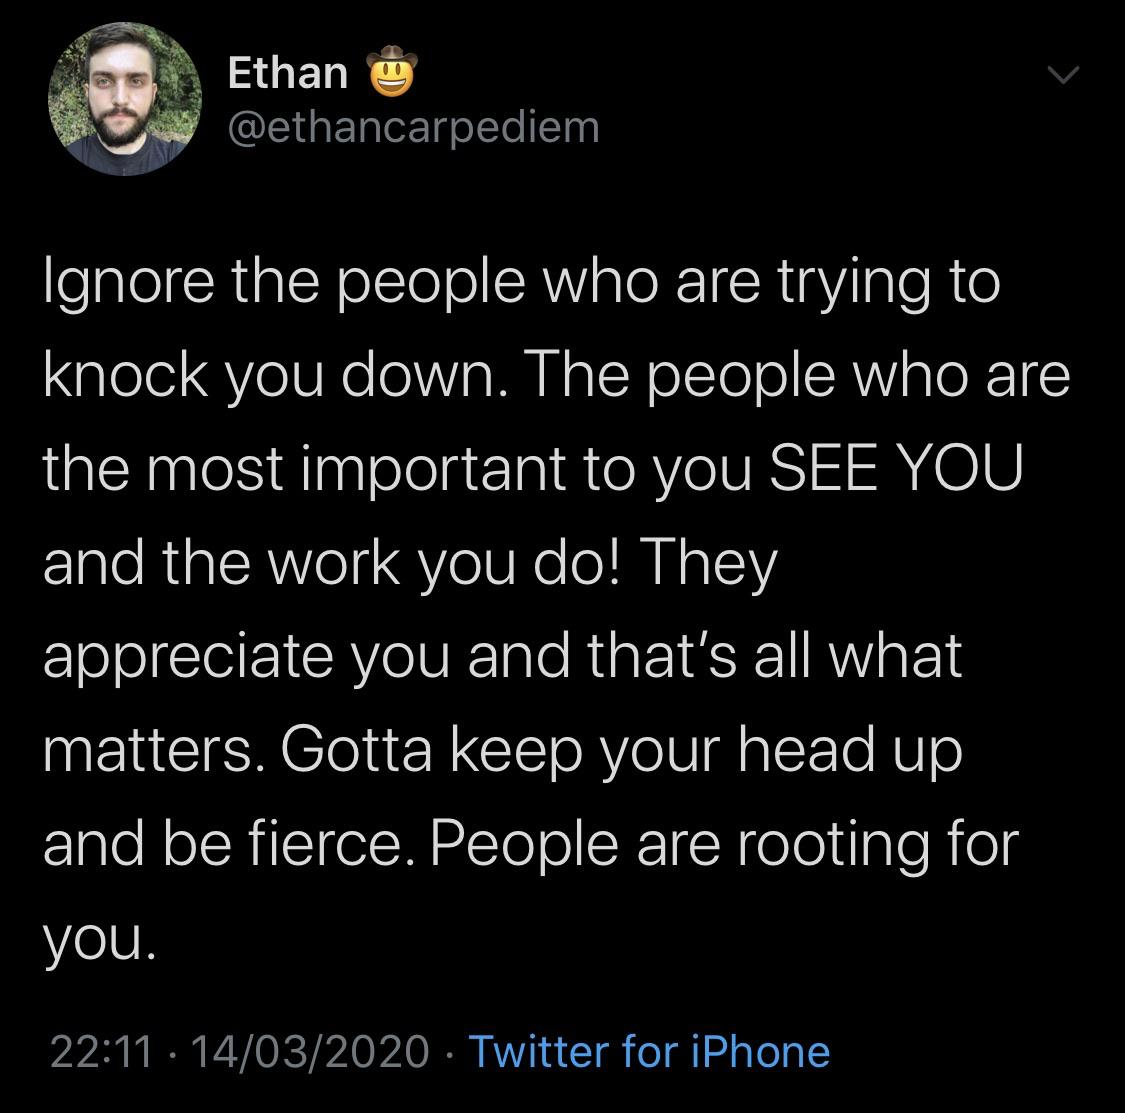 """i?"""" Ethan i e W @ethancarpediem Ignore the people who are trying to knock you down. The people who are the most important to you SEE YOU and the work you do! They appreciate you and that's all what matters. Gotta keep your head up and be fieroe. People are rooting for you. 22:11 - 14/03/2020 - Twitter https://inspirational.ly"""